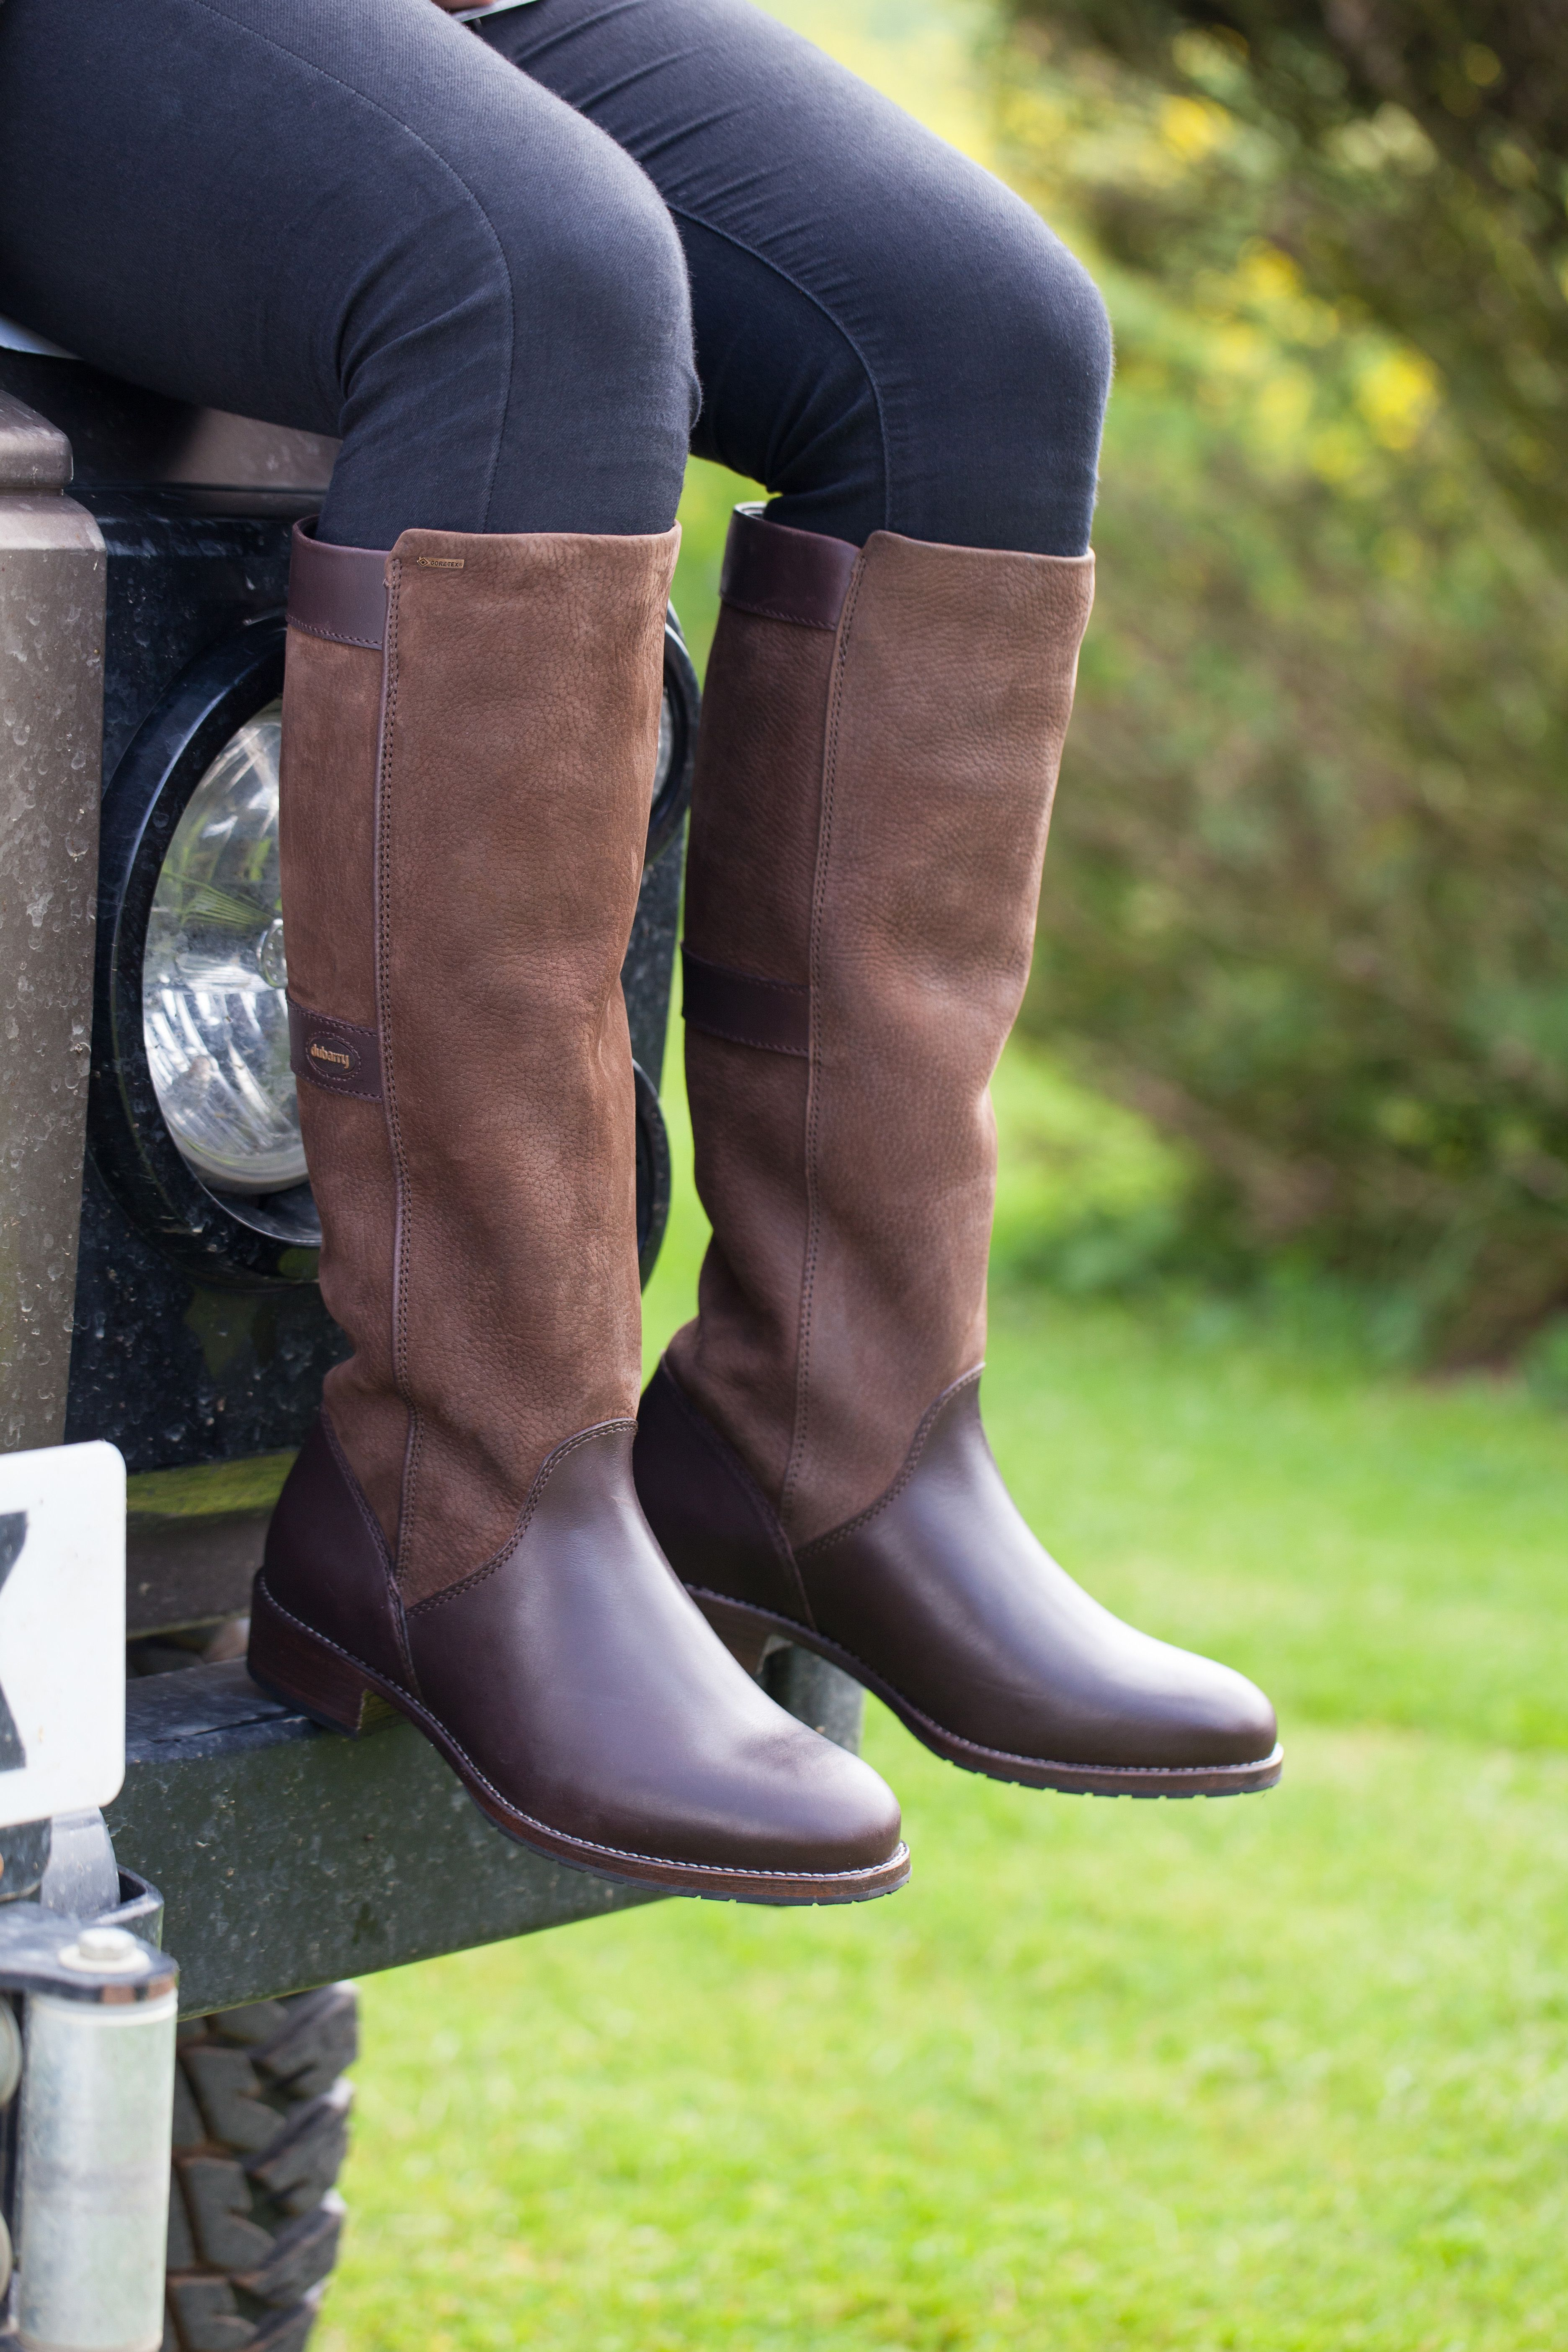 fdfbfc69ee59f The New Dubarry Fermoy Boots in Mahogany | outdoors style in 2019 ...